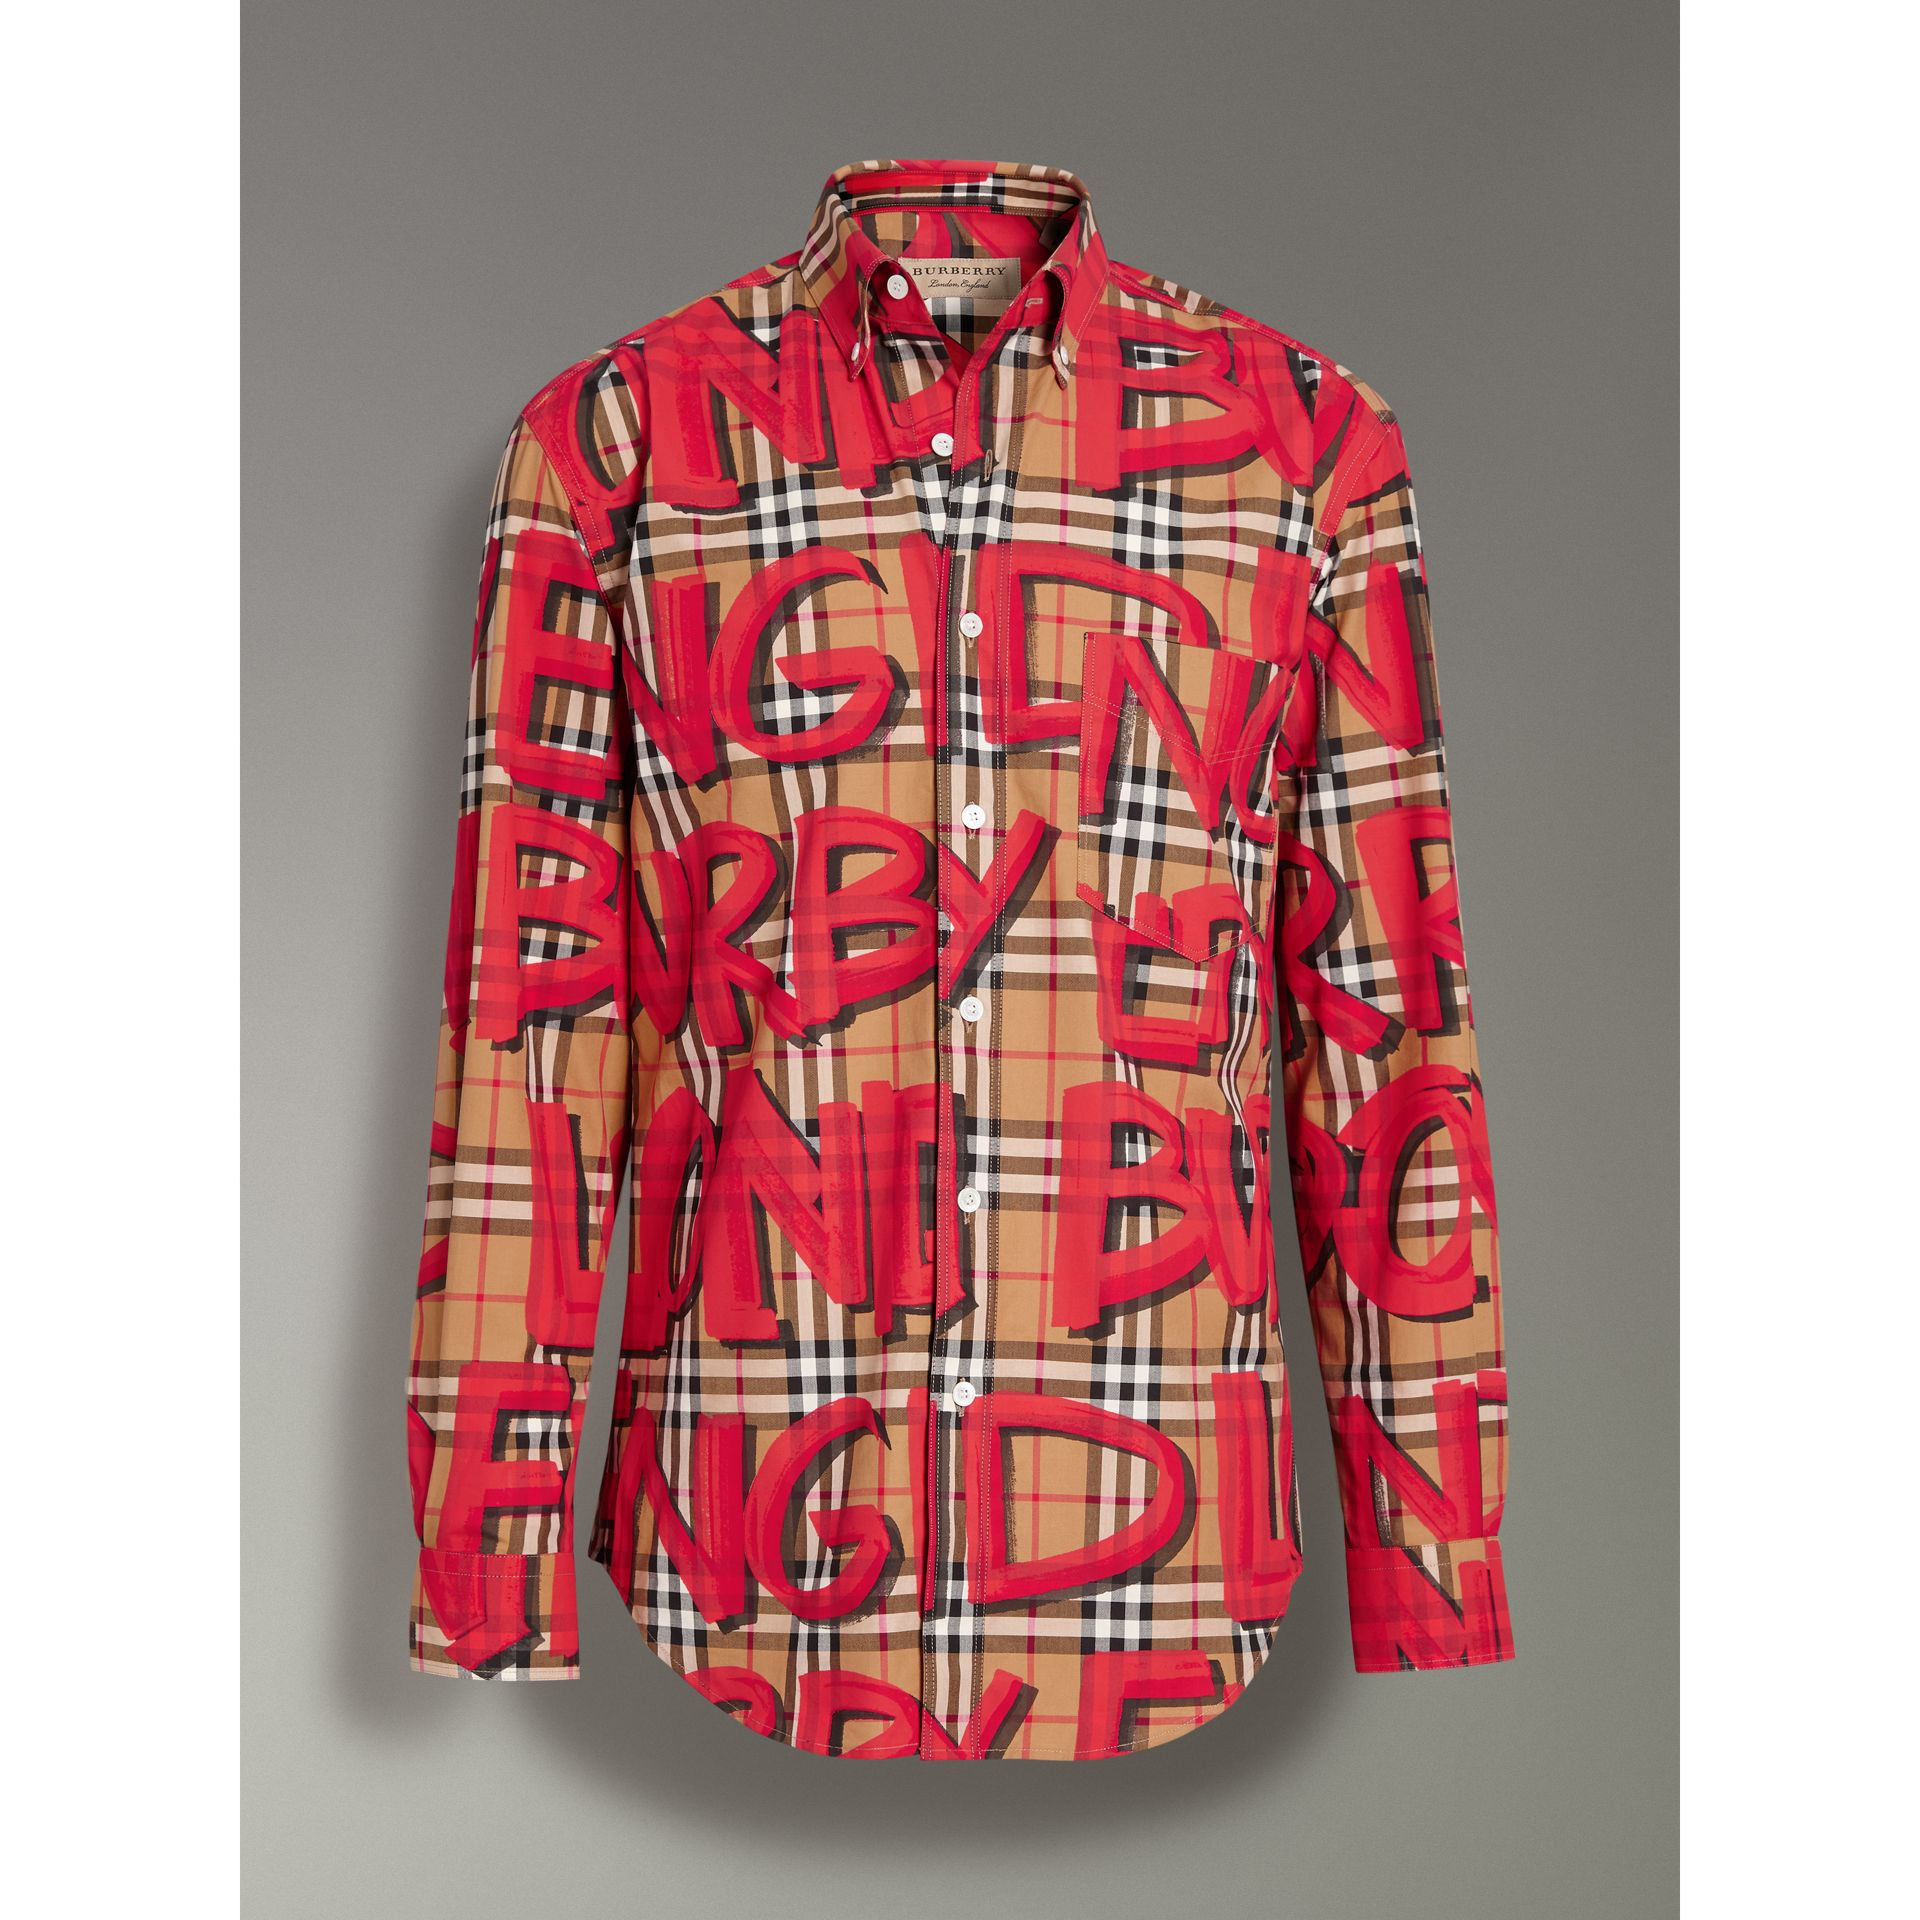 Graffiti Print Vintage Check Shirt in Bright Red - Men | Burberry Australia - gallery image 3